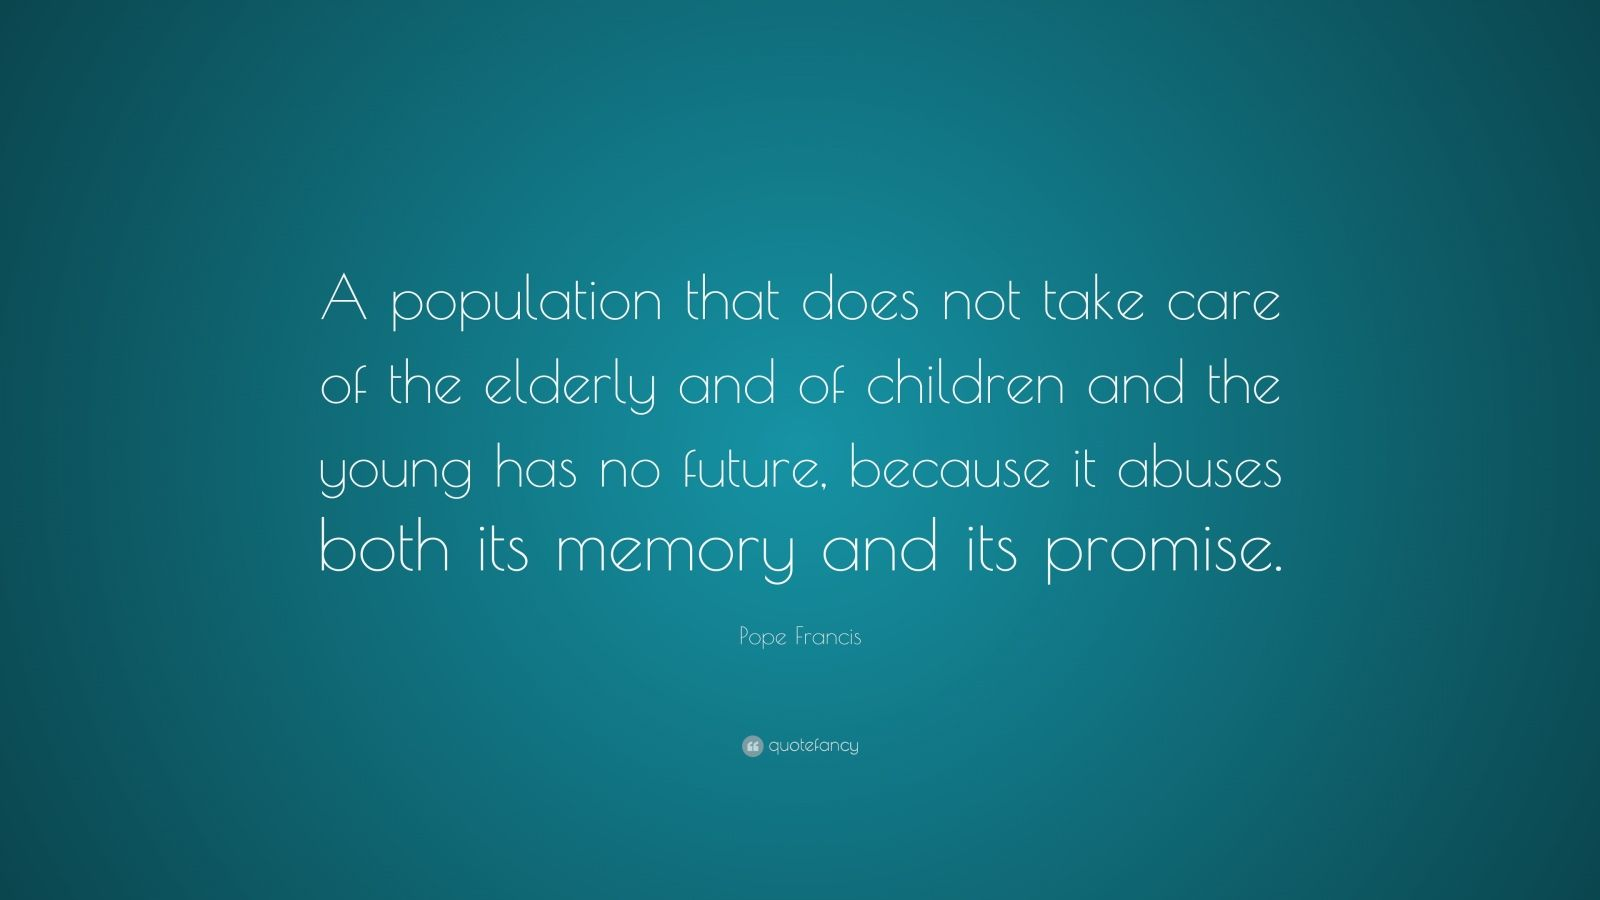 """Pope Francis Quote: """"A population that does not take care of the elderly and of children and the young has no future, because it abuses both its memory and its promise."""""""